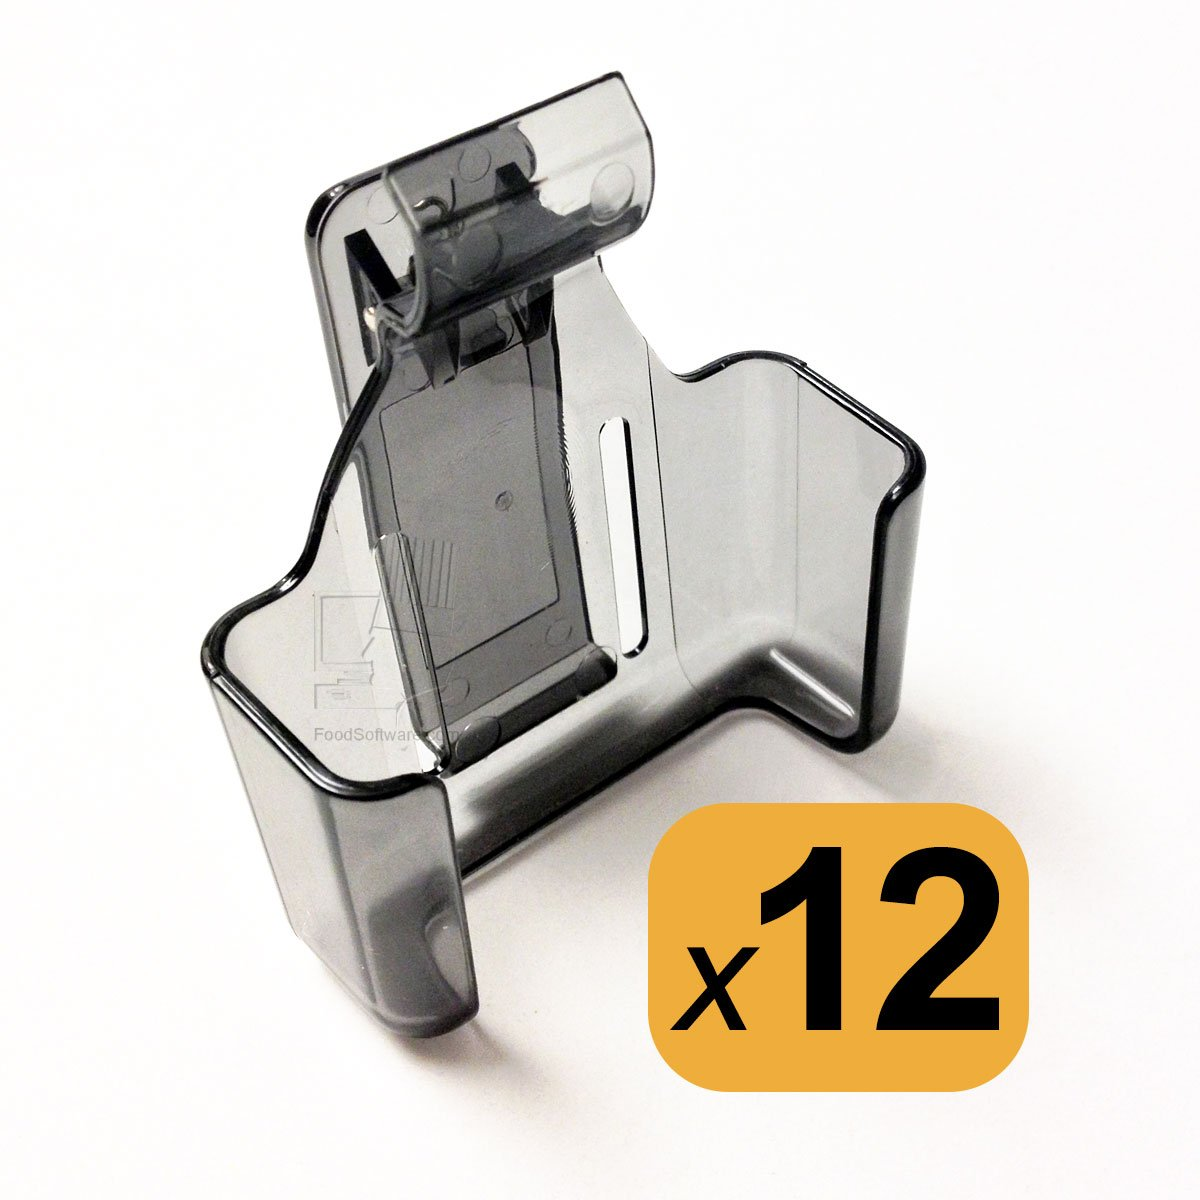 Pager Cradle Belt Clips for LRS Star SP4 Server Pagers (1 dozen) Long Range Systems (LRS) LYSB014RUW9E8-ELECTRNCS